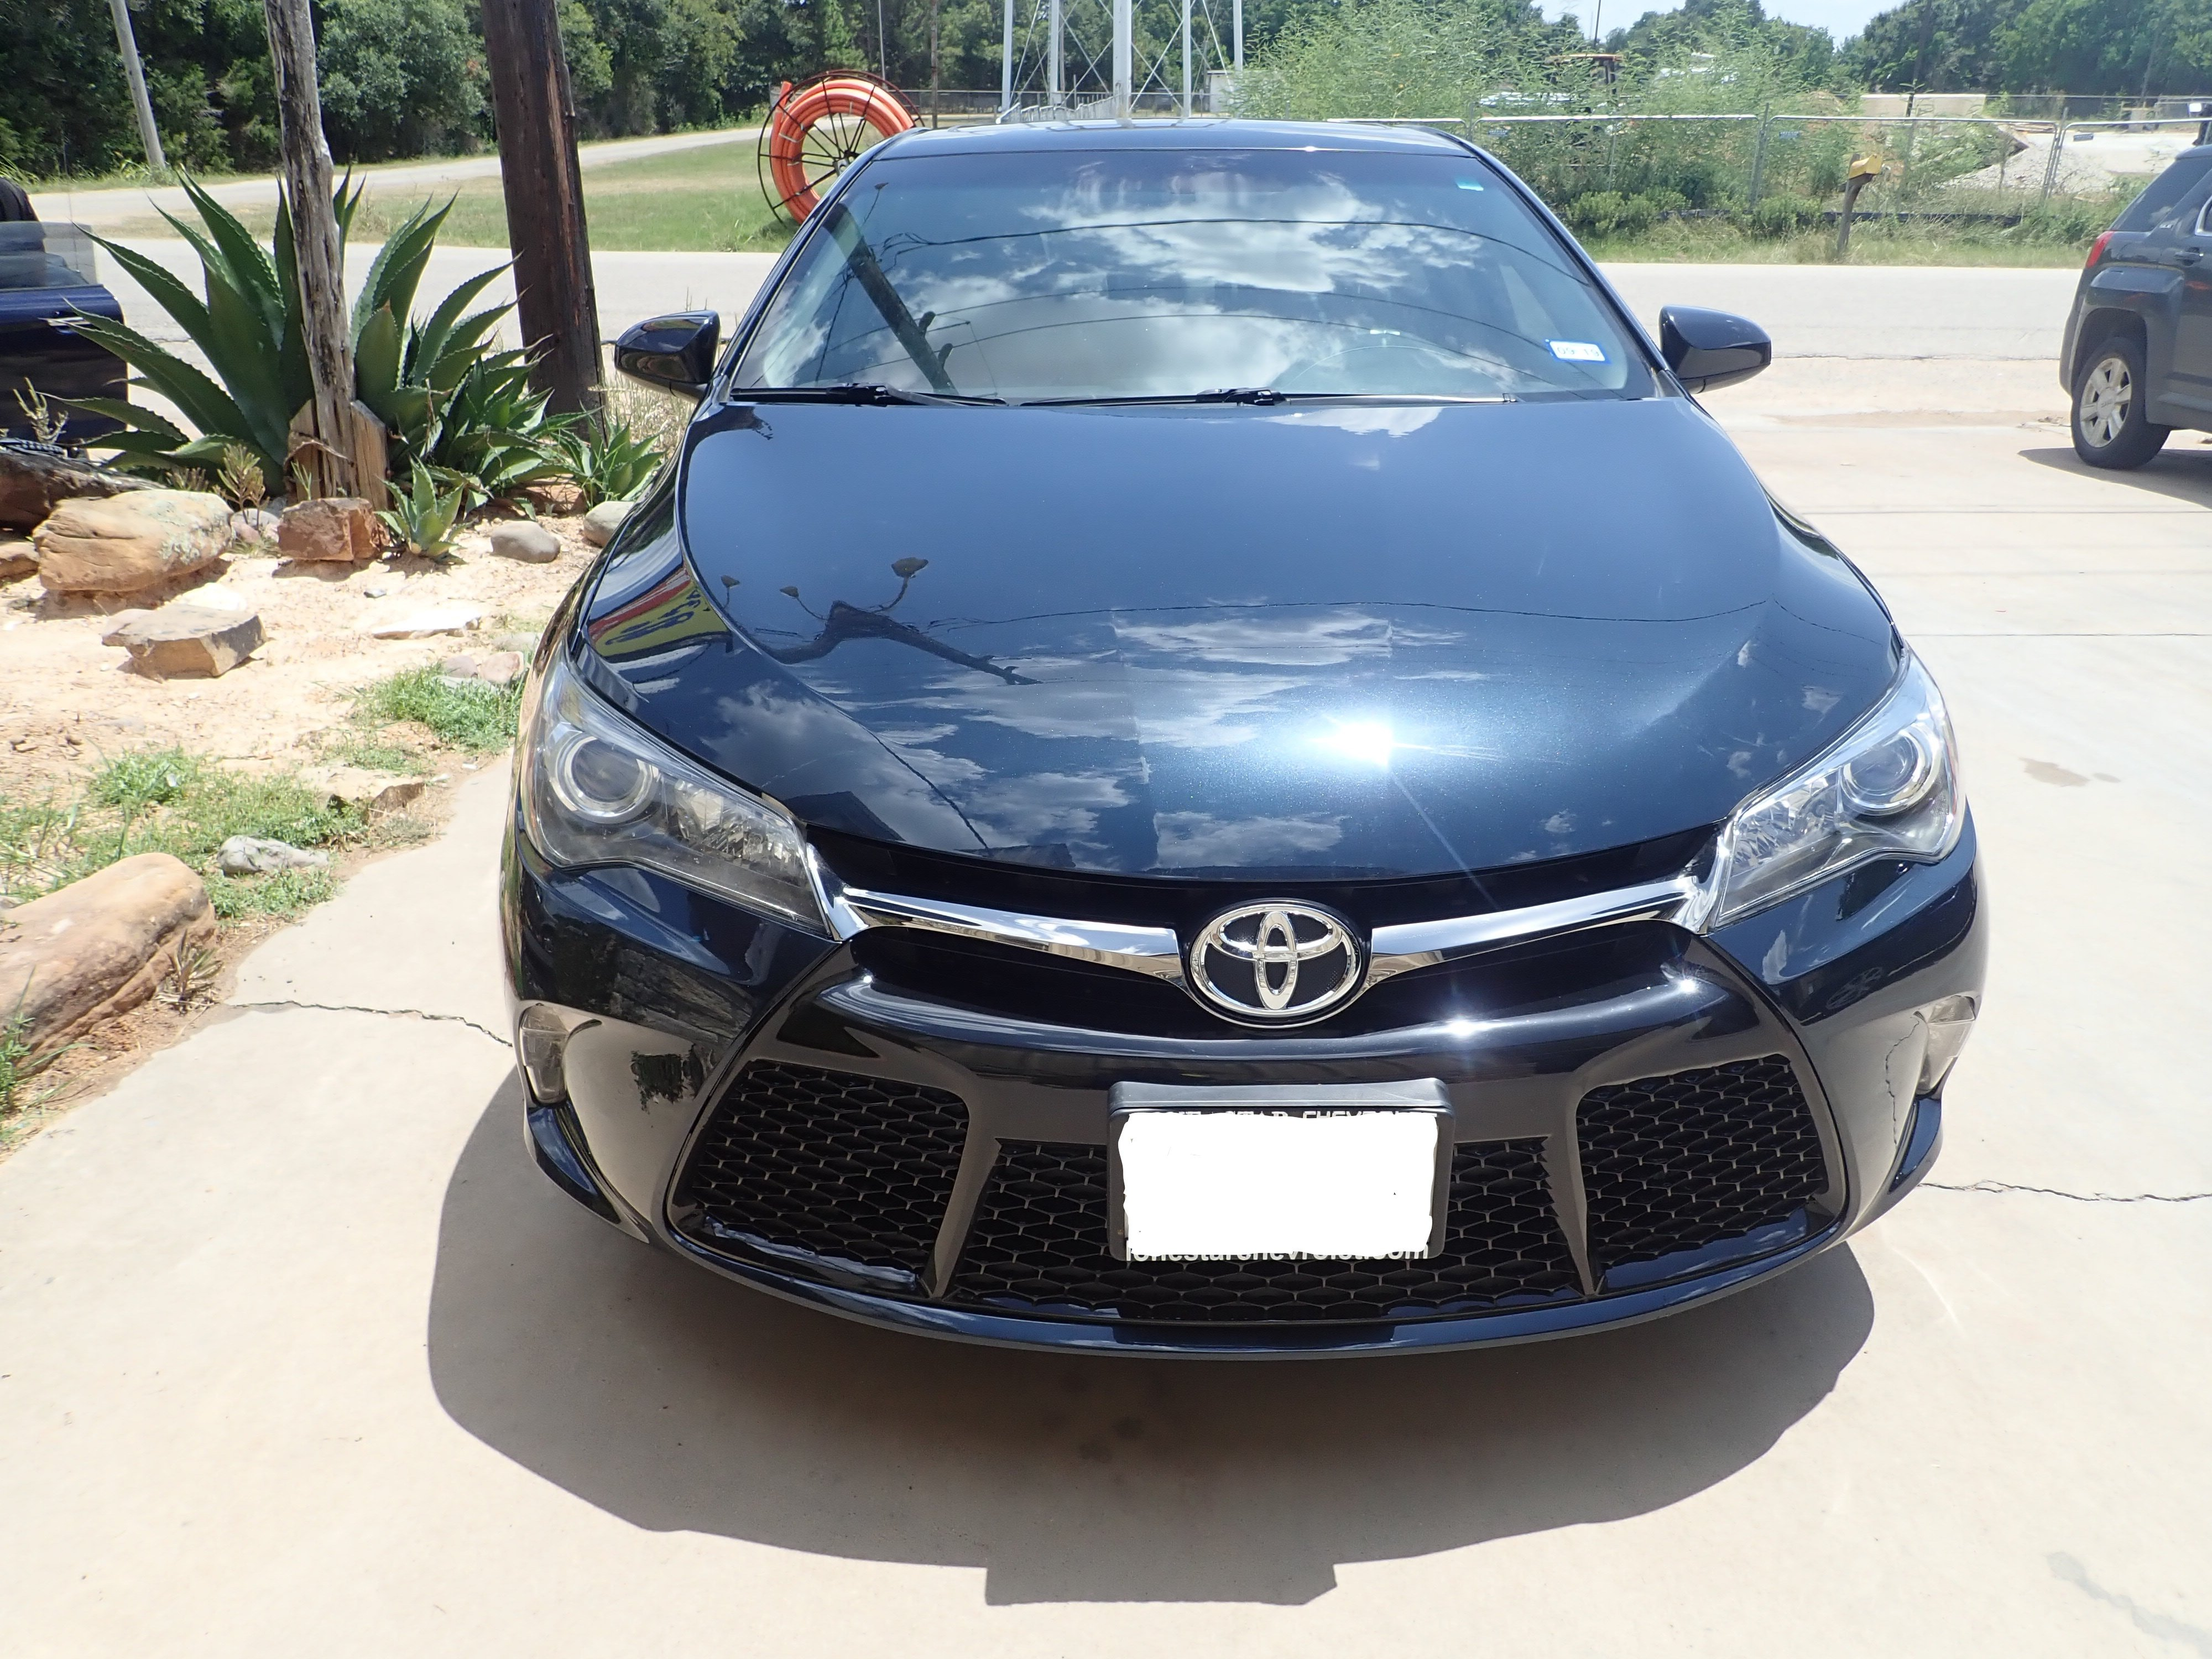 2016 Toyota Camry Repairs Completed